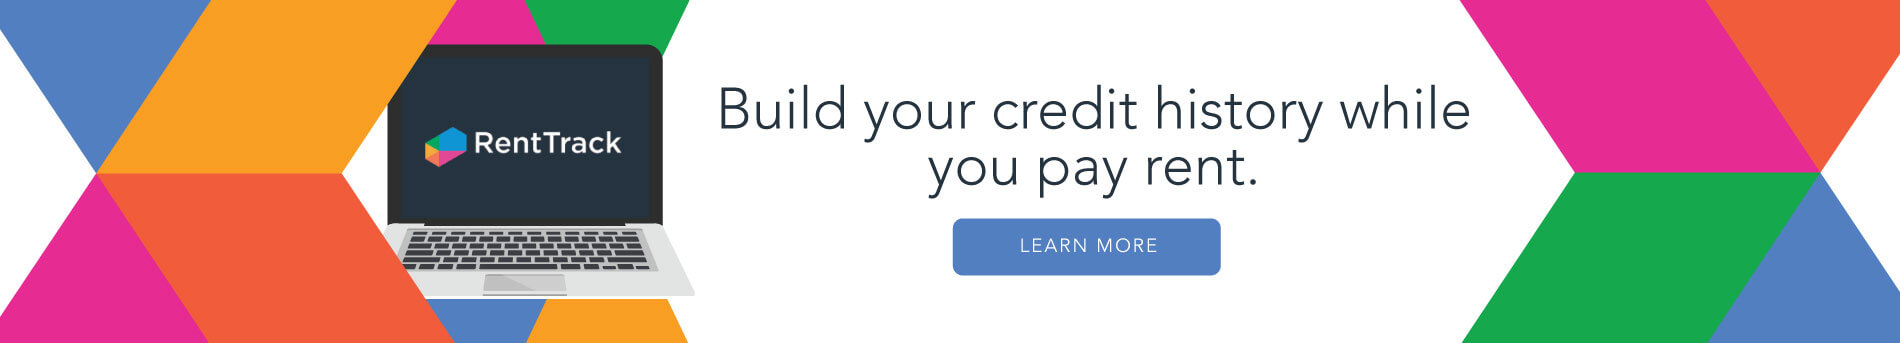 RentTrack Ad for building credit with rent history